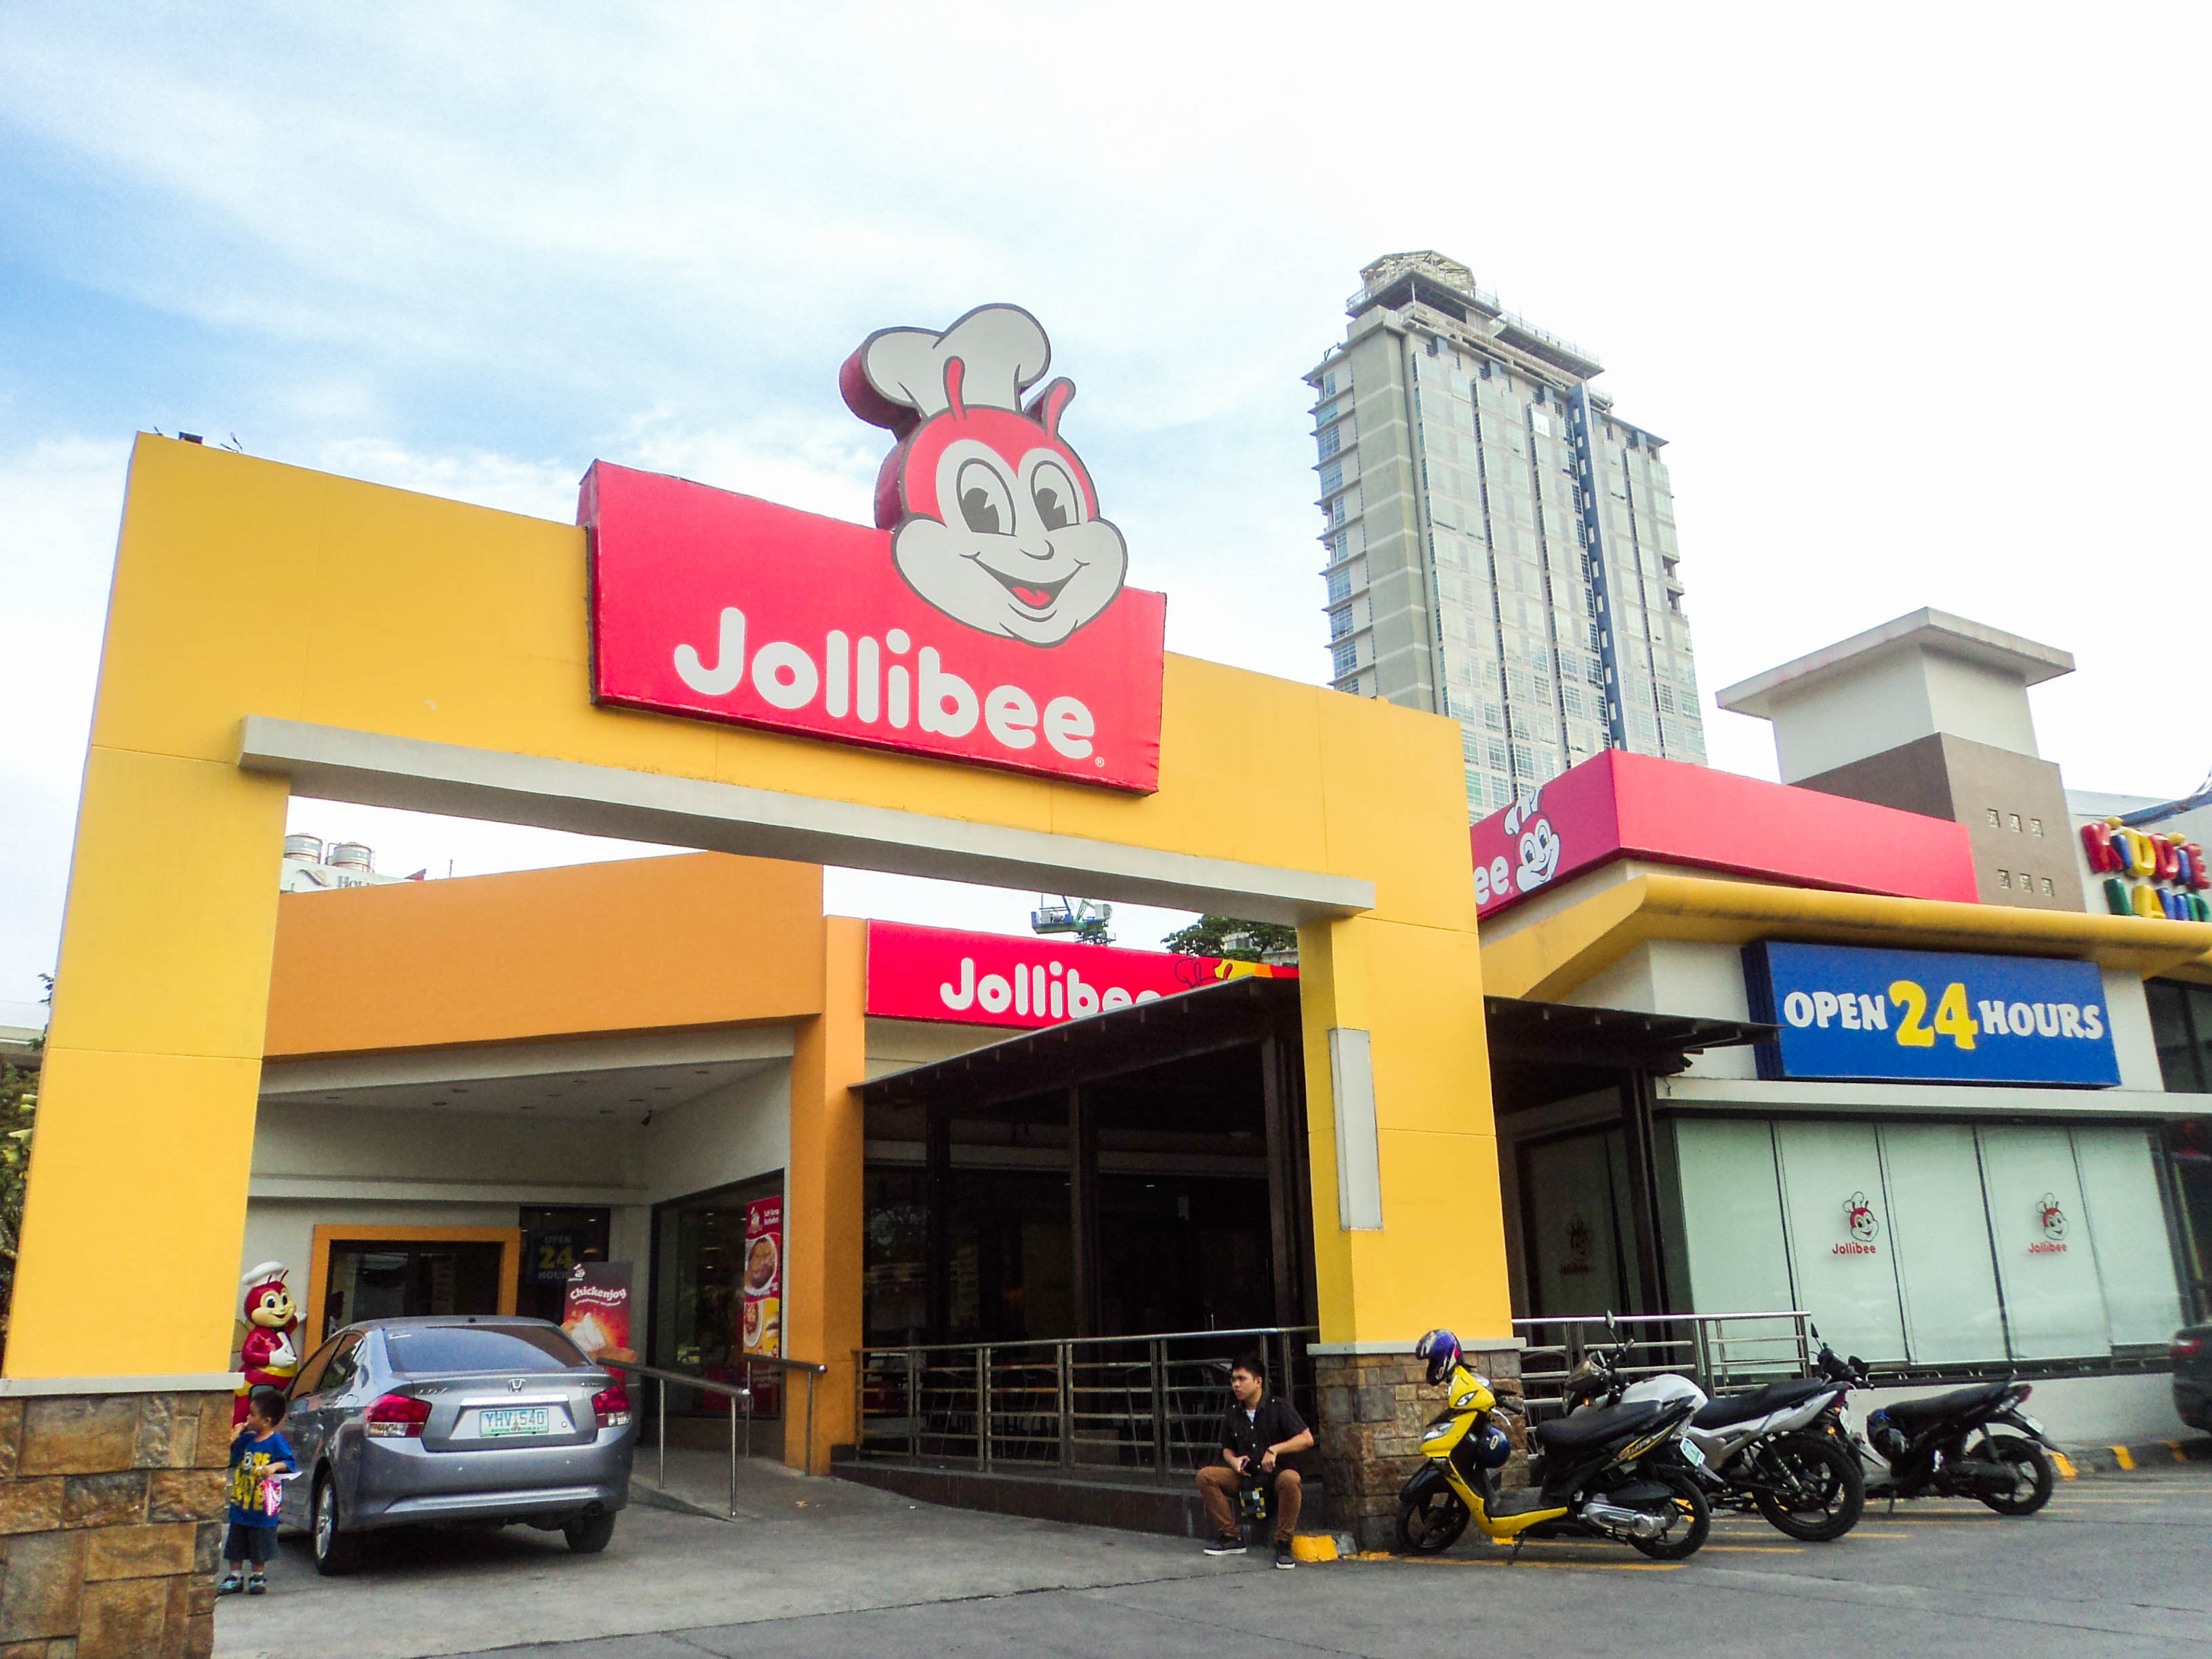 The Philippines' number 1 fast food chain, Jollibee.